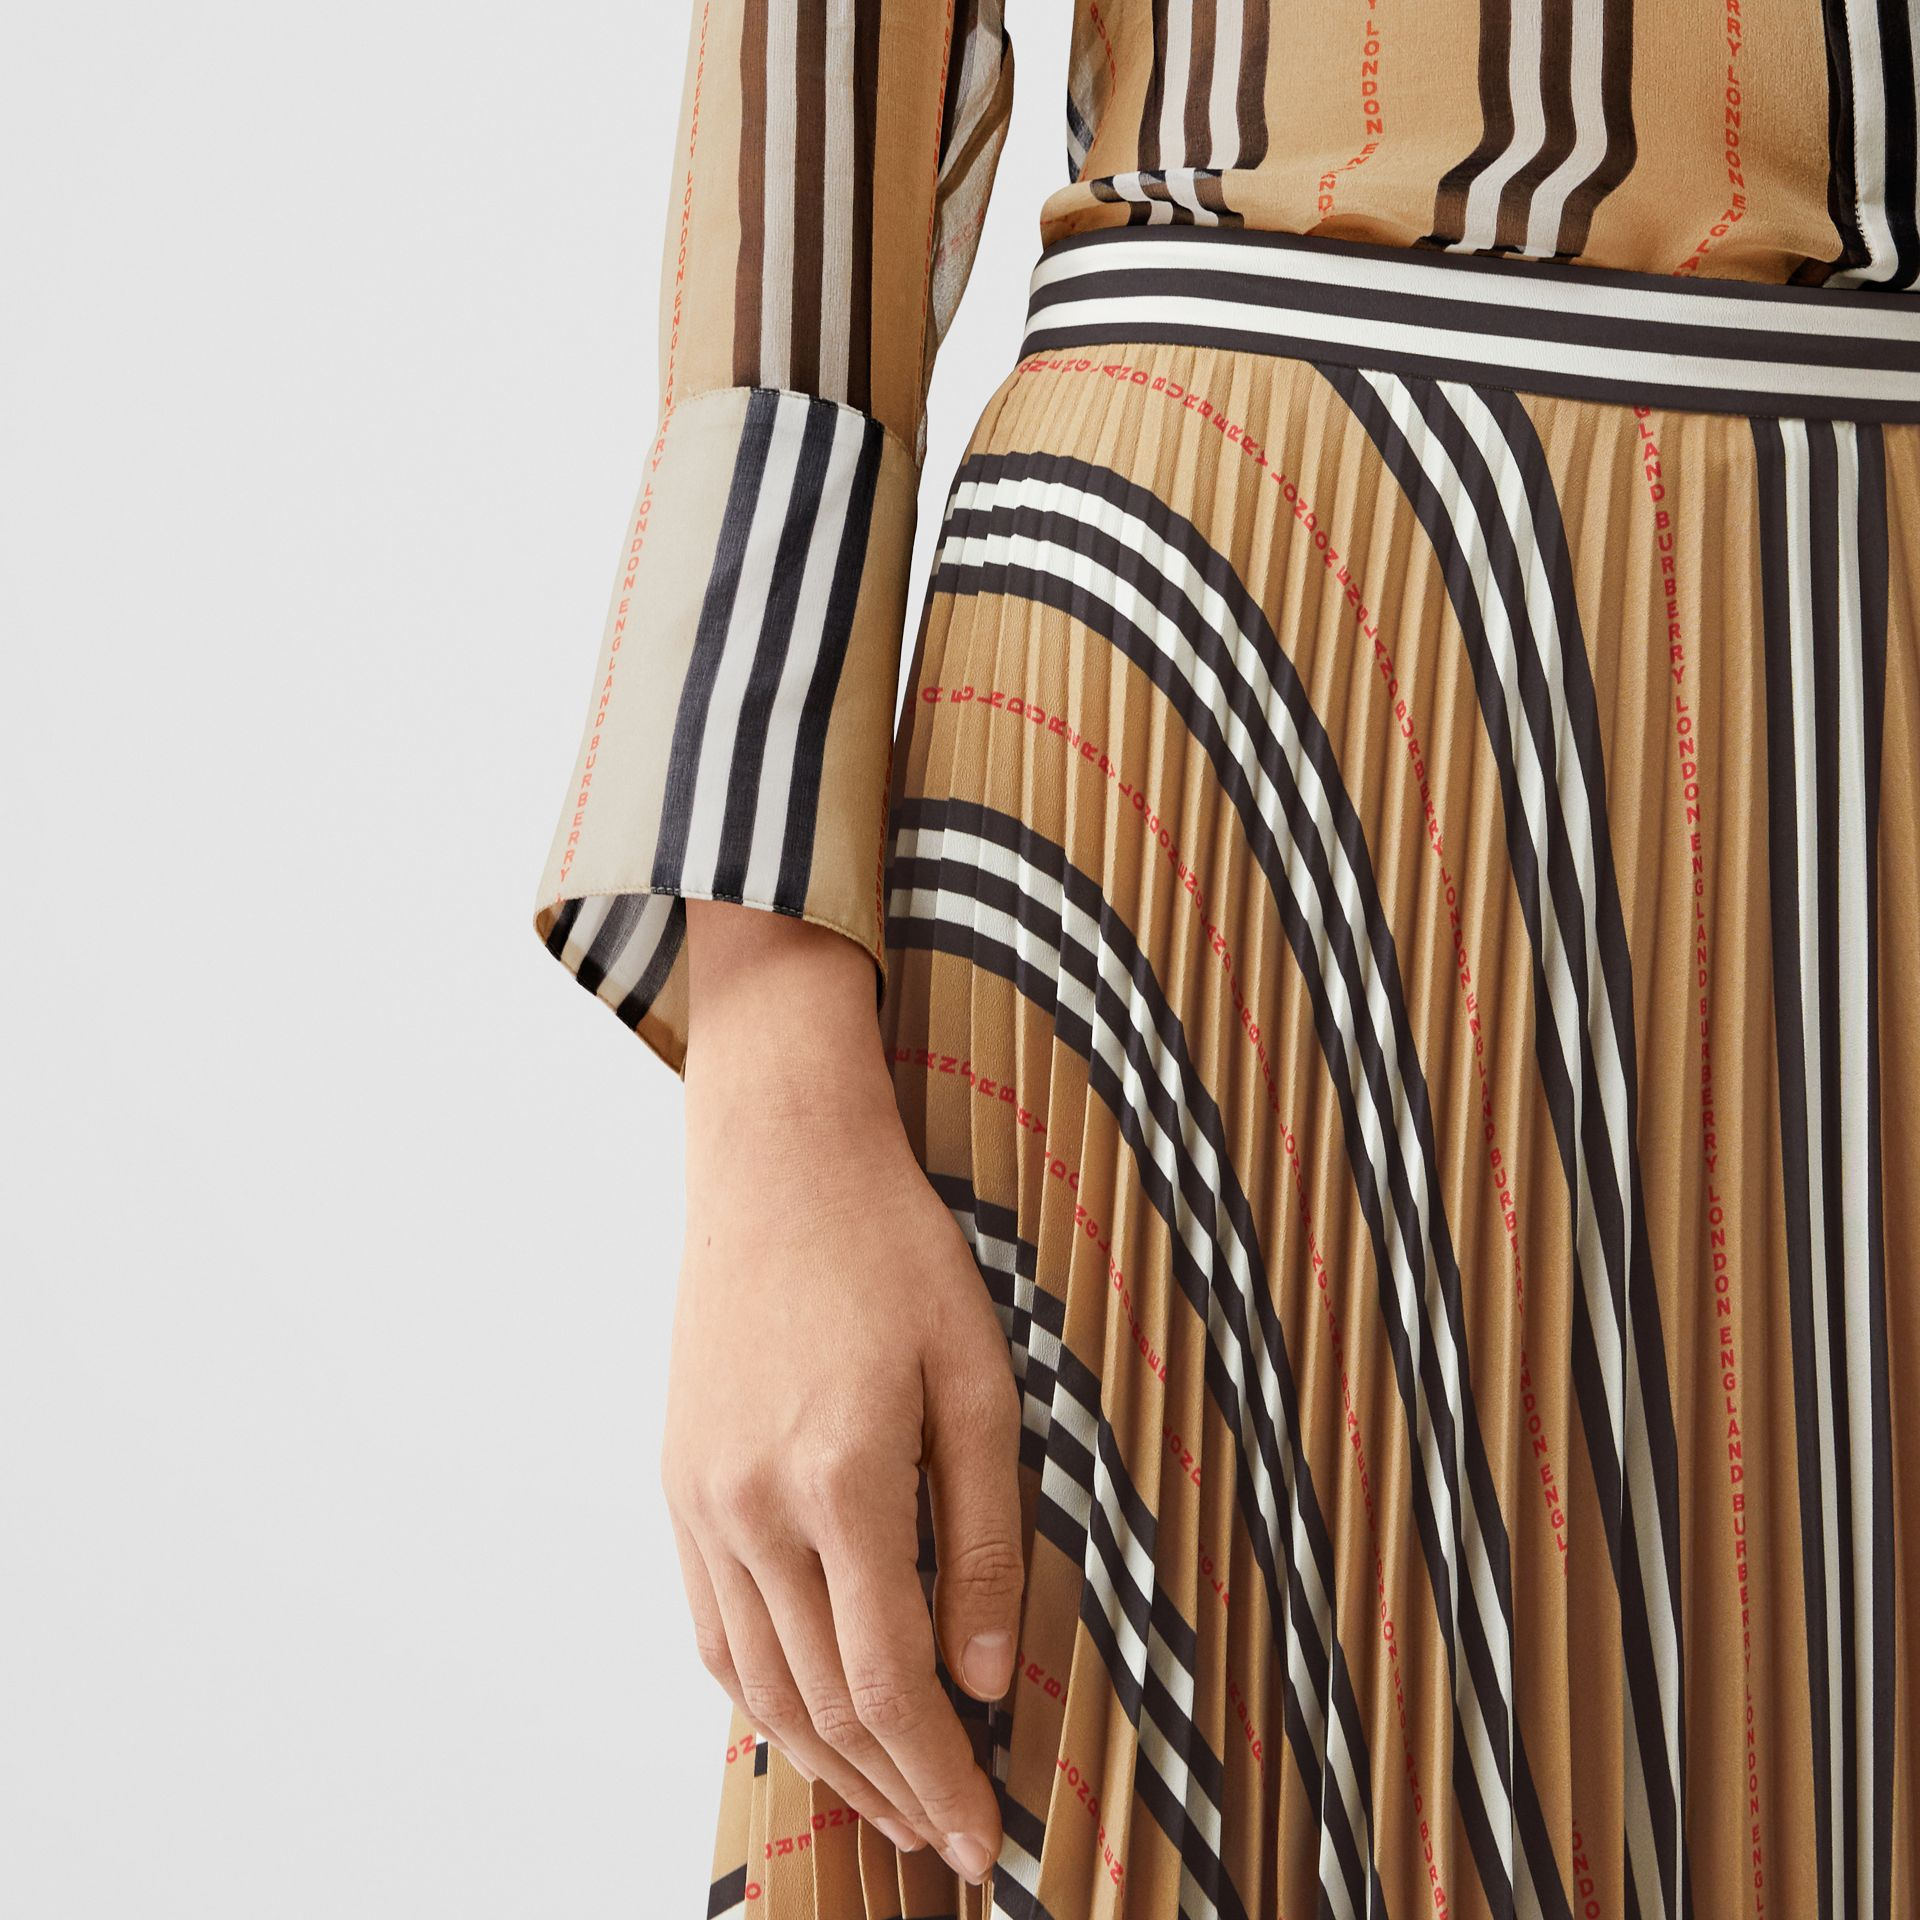 Logo and Stripe Print Crepe Pleated Skirt in Archive Beige - Women | Burberry Canada - gallery image 1